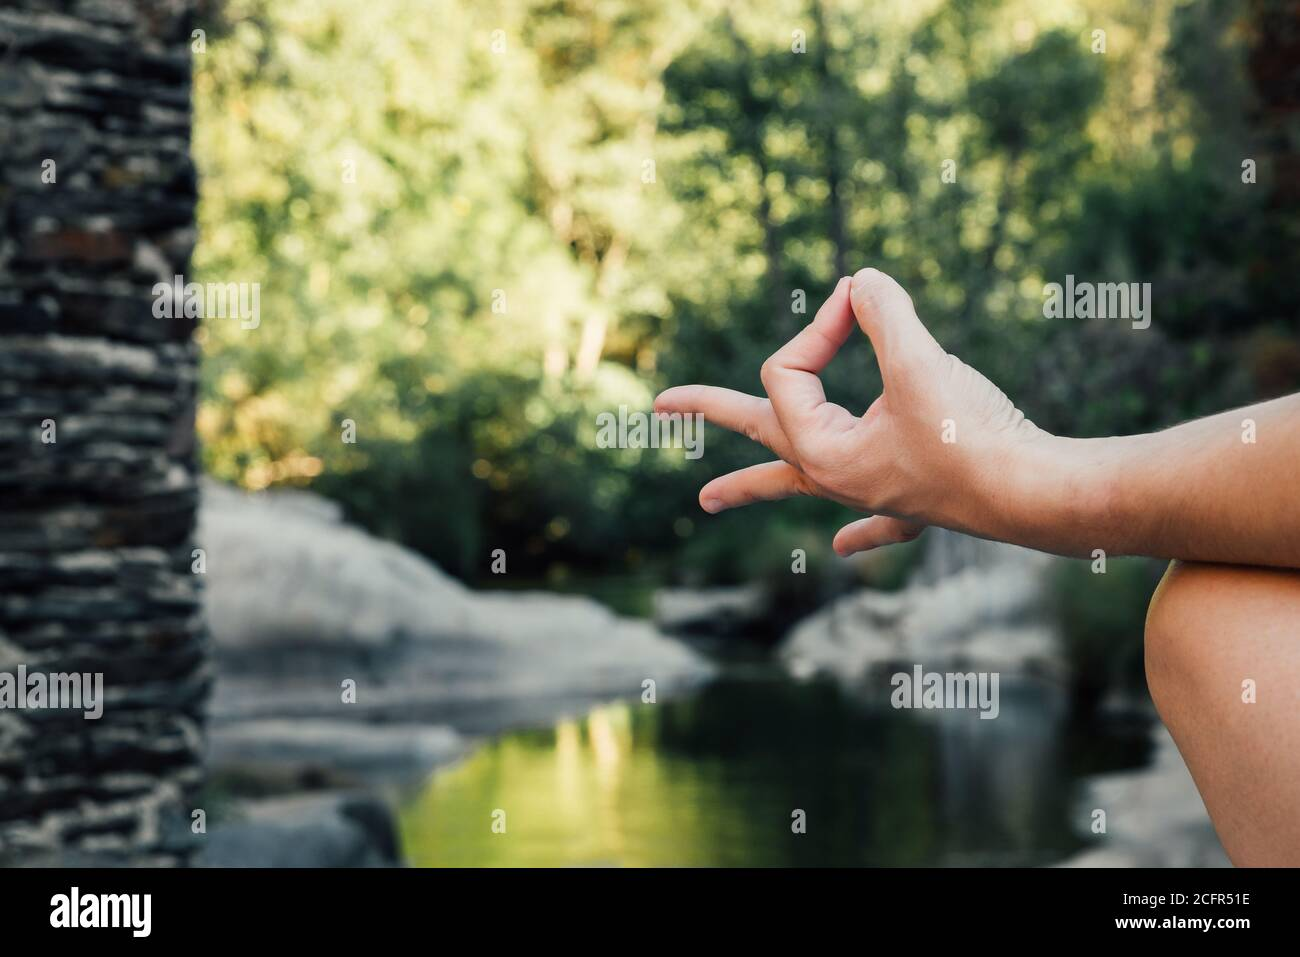 woman's hand doing a mudra in nature Stock Photo